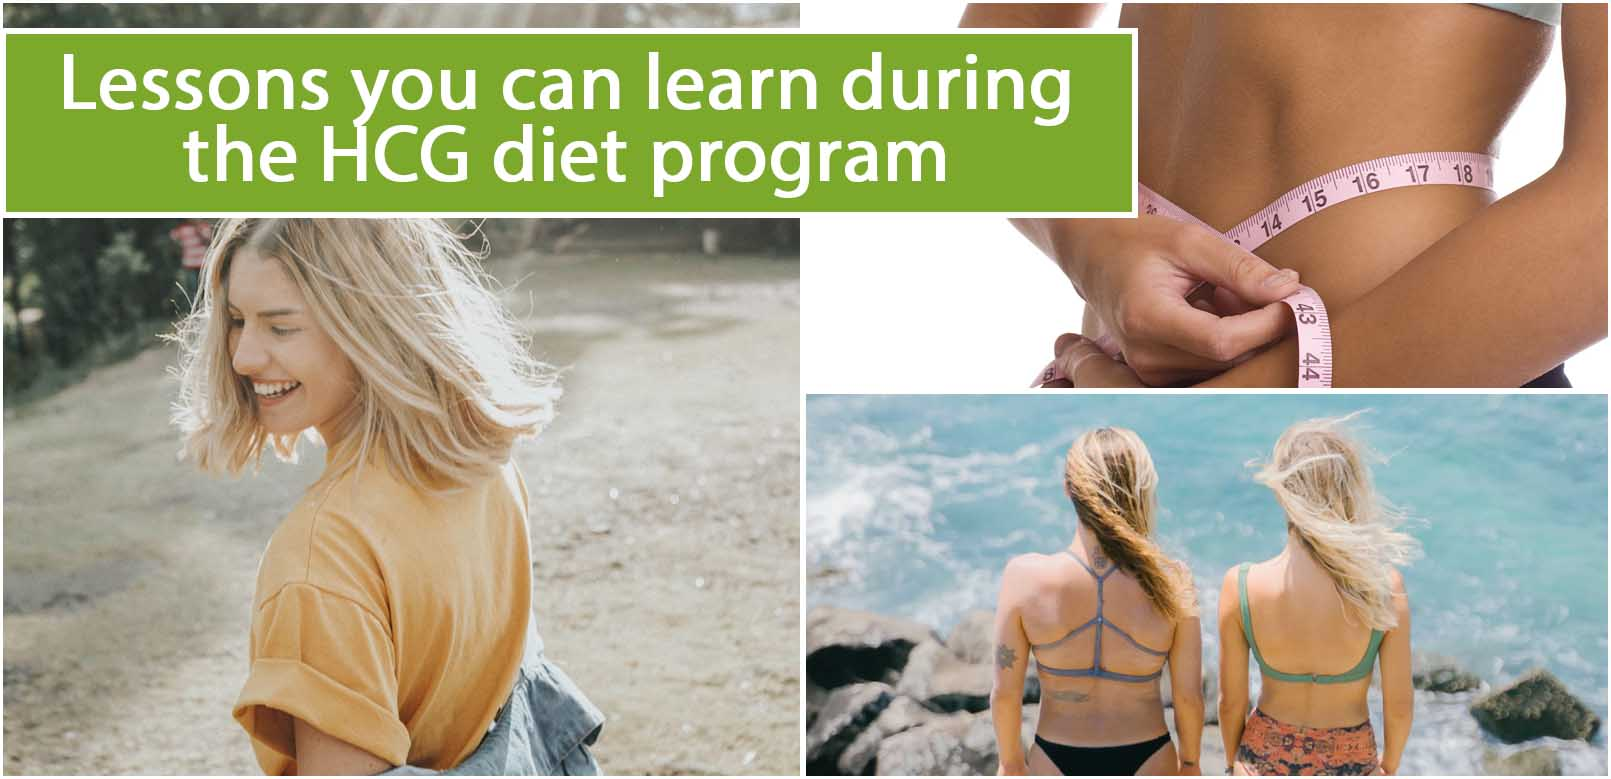 Lessons you can learn during the HCG diet program